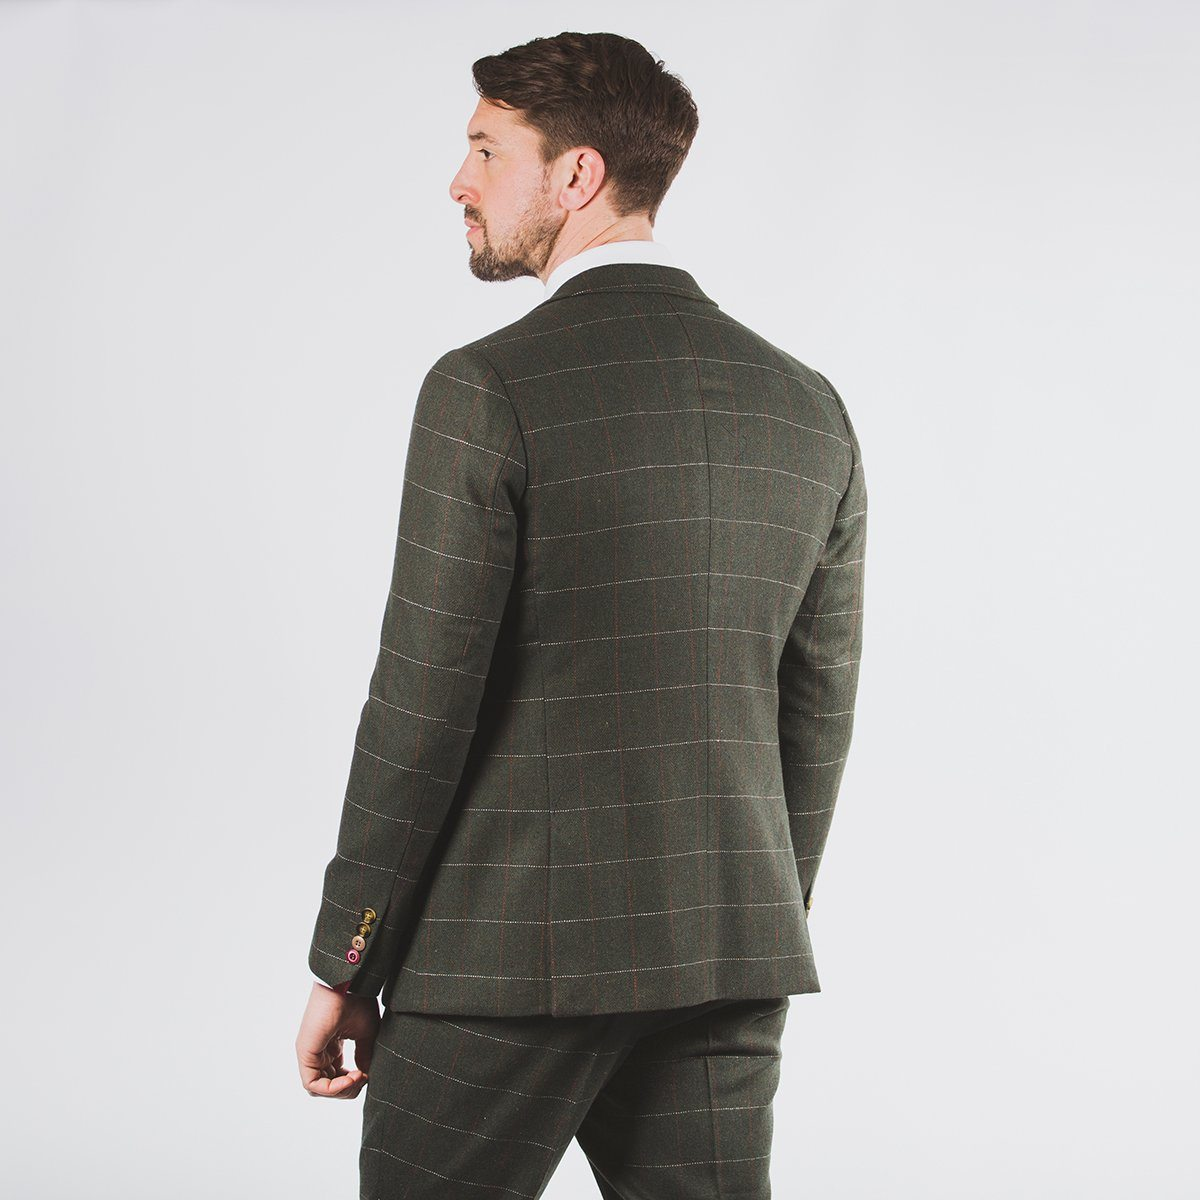 Harold Green Tweed Suit